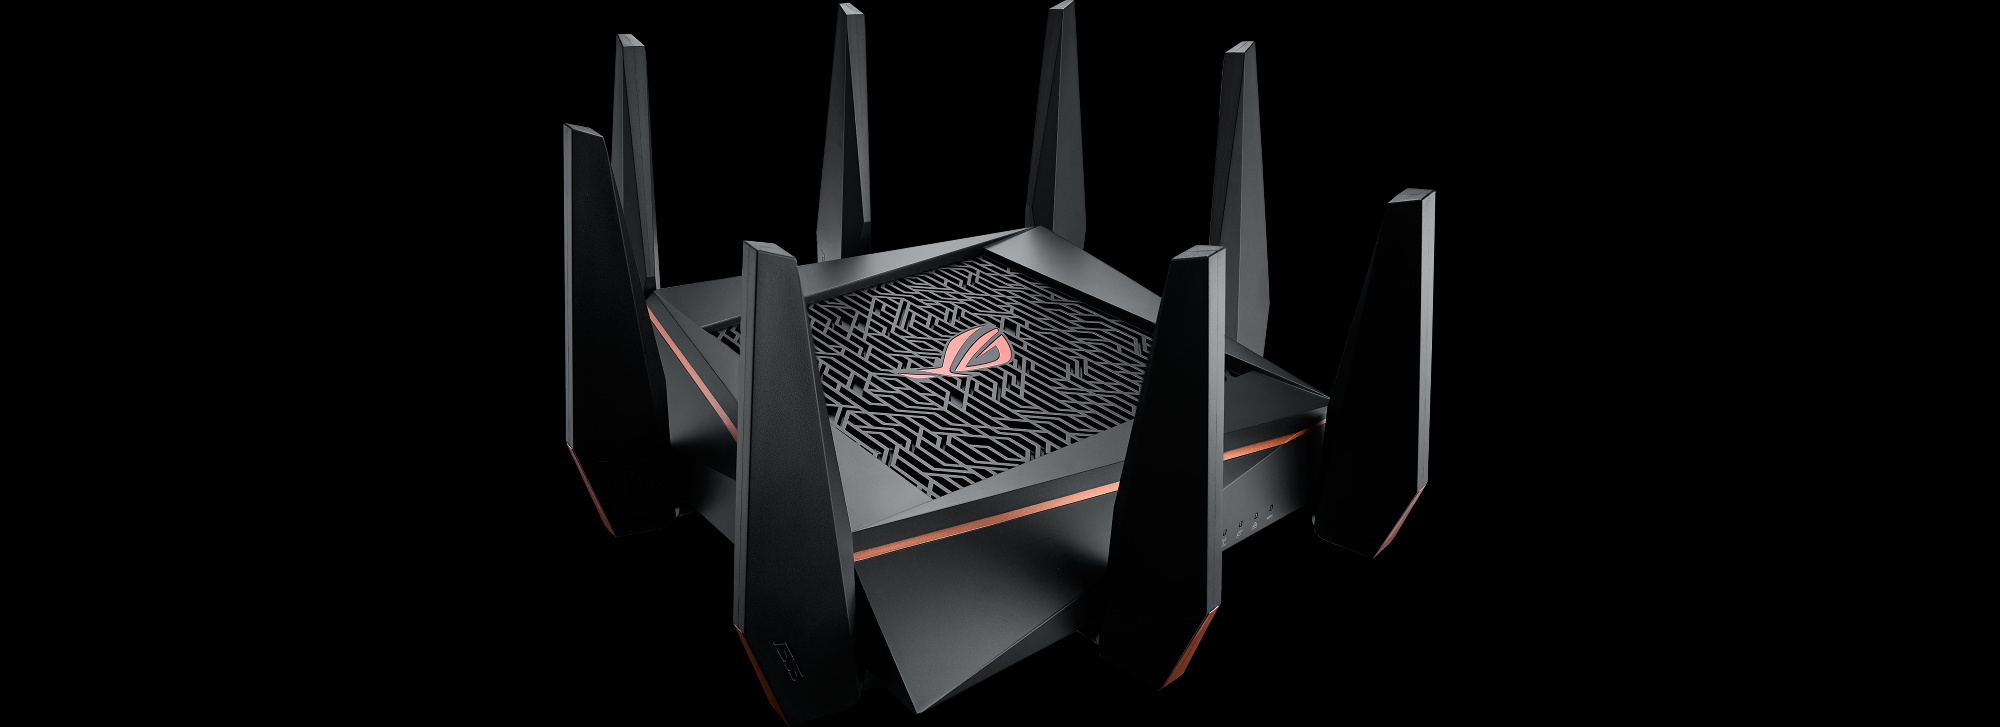 Enraptured With The Gt Ac5300 Gaming Router Rog Republic Of Wireless Home Network Broadcom Diagram Rapture